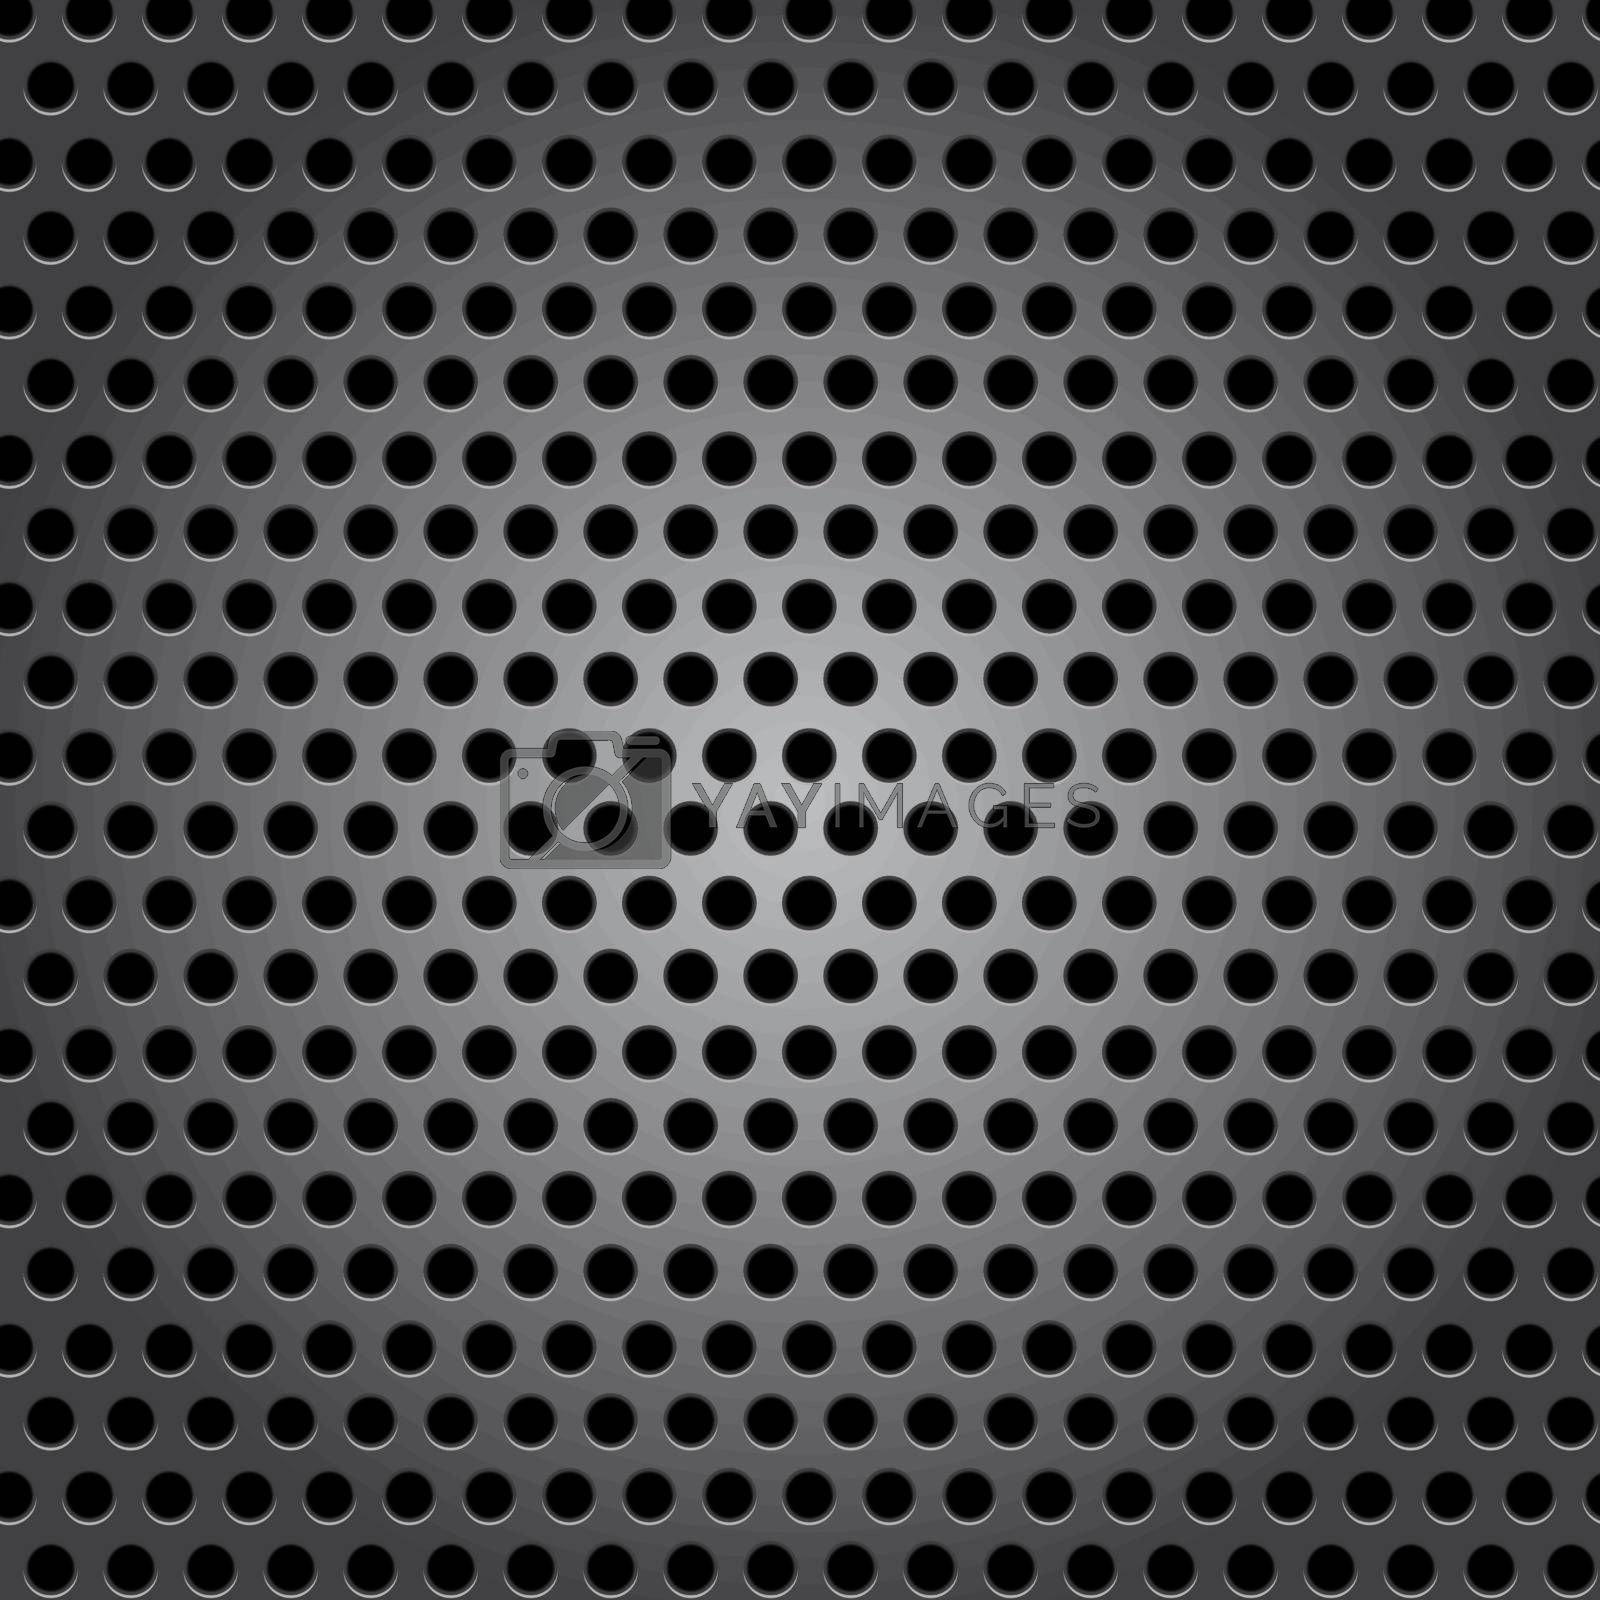 Seamless circle metal surface texture, vector illustration